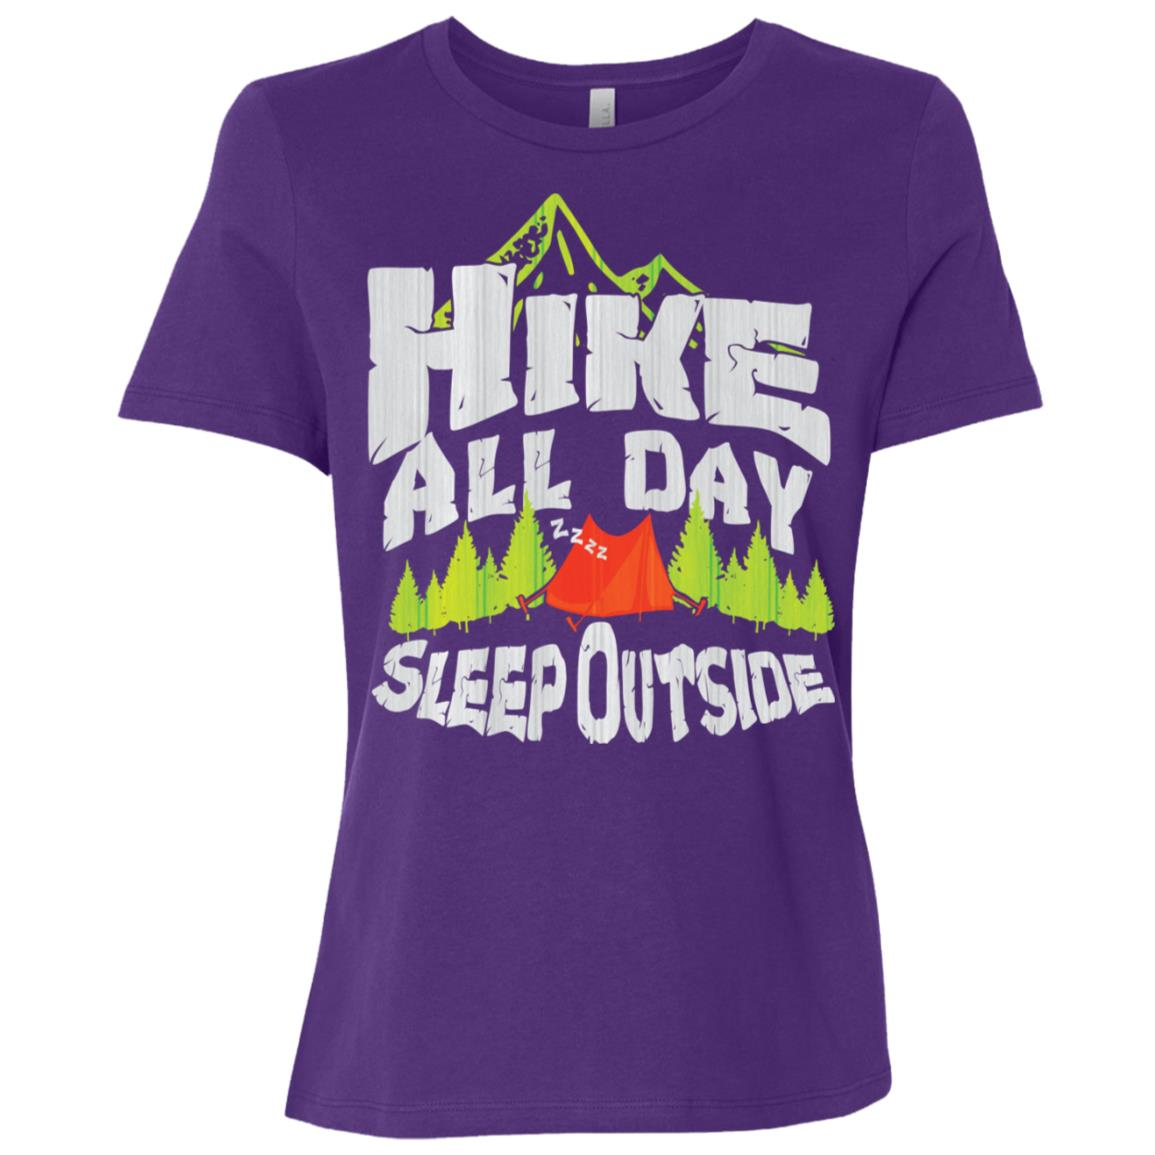 Forrest Hiker Camping Outdoor Nature Lover Gift Women Short Sleeve T-Shirt